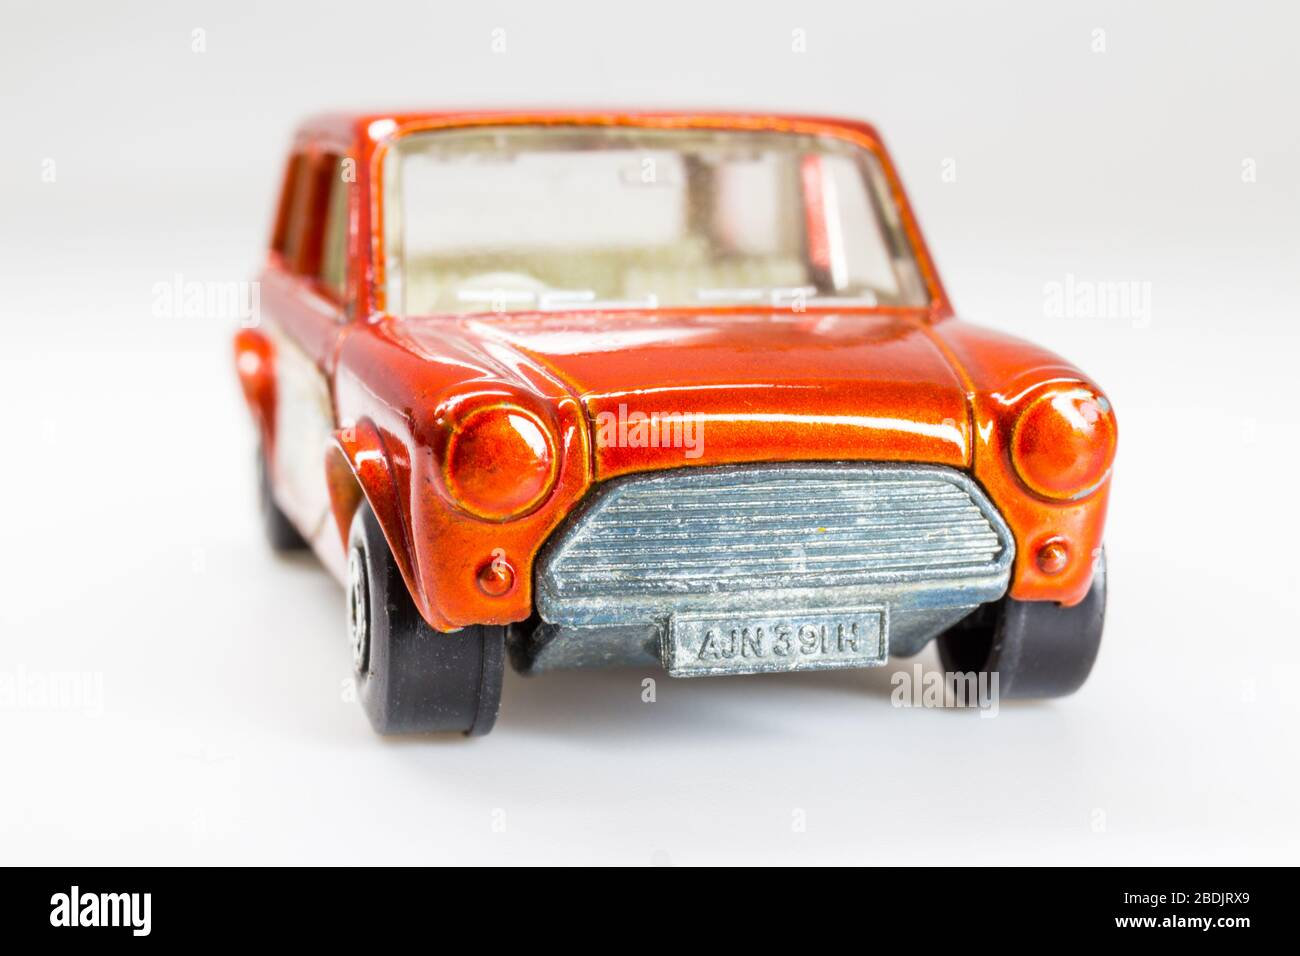 Lesney Products Matchbox model toy car 1-75 series no.29 Racing Mini Stock Photo